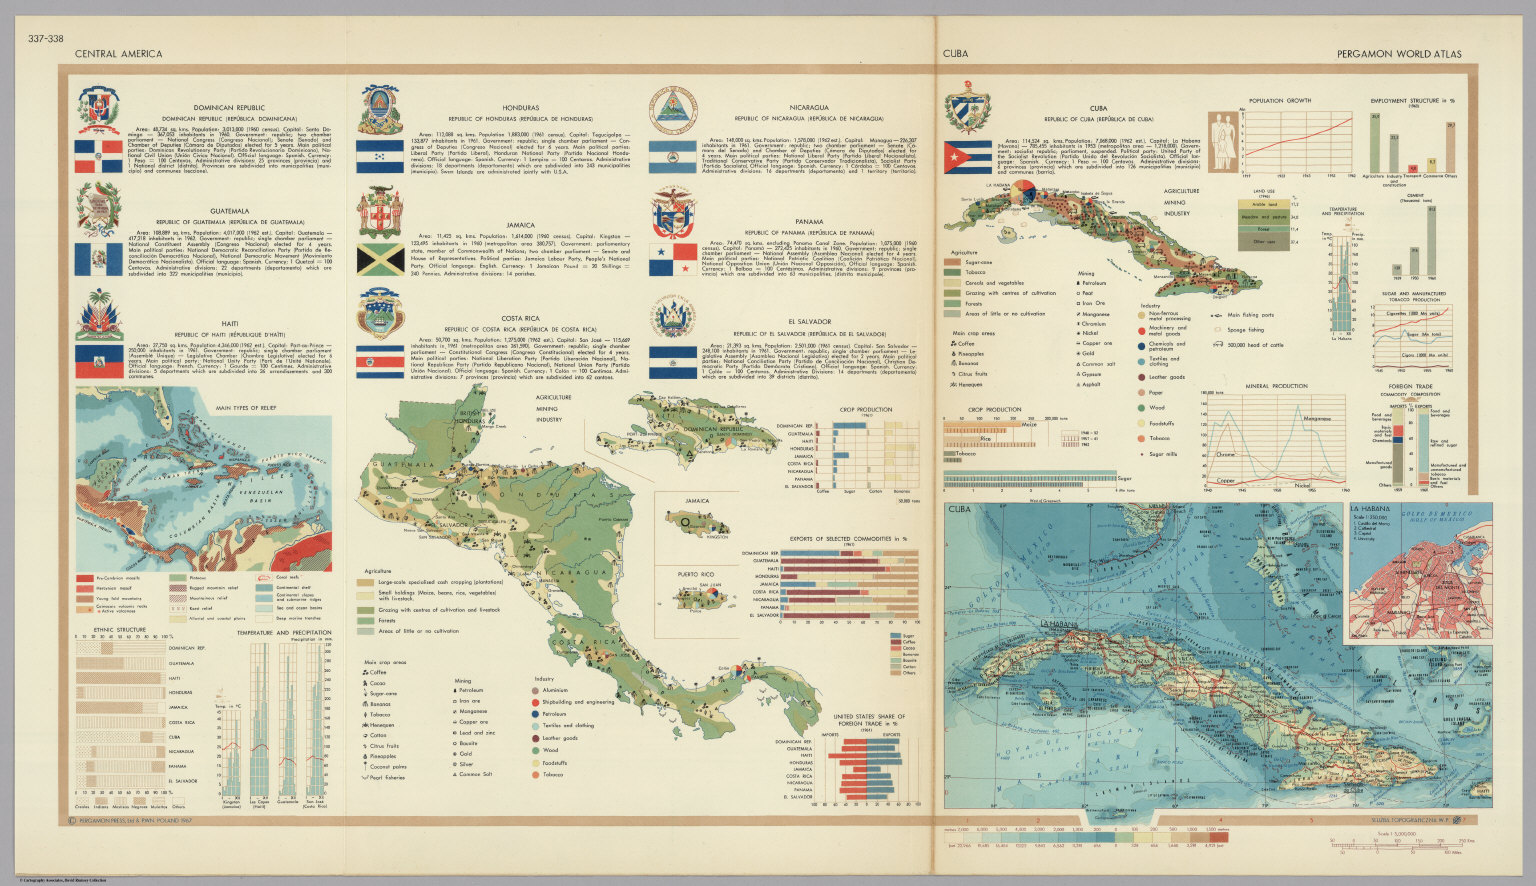 Central america cuba pergamon world atlas david rumsey pergamon world atlas gumiabroncs Image collections